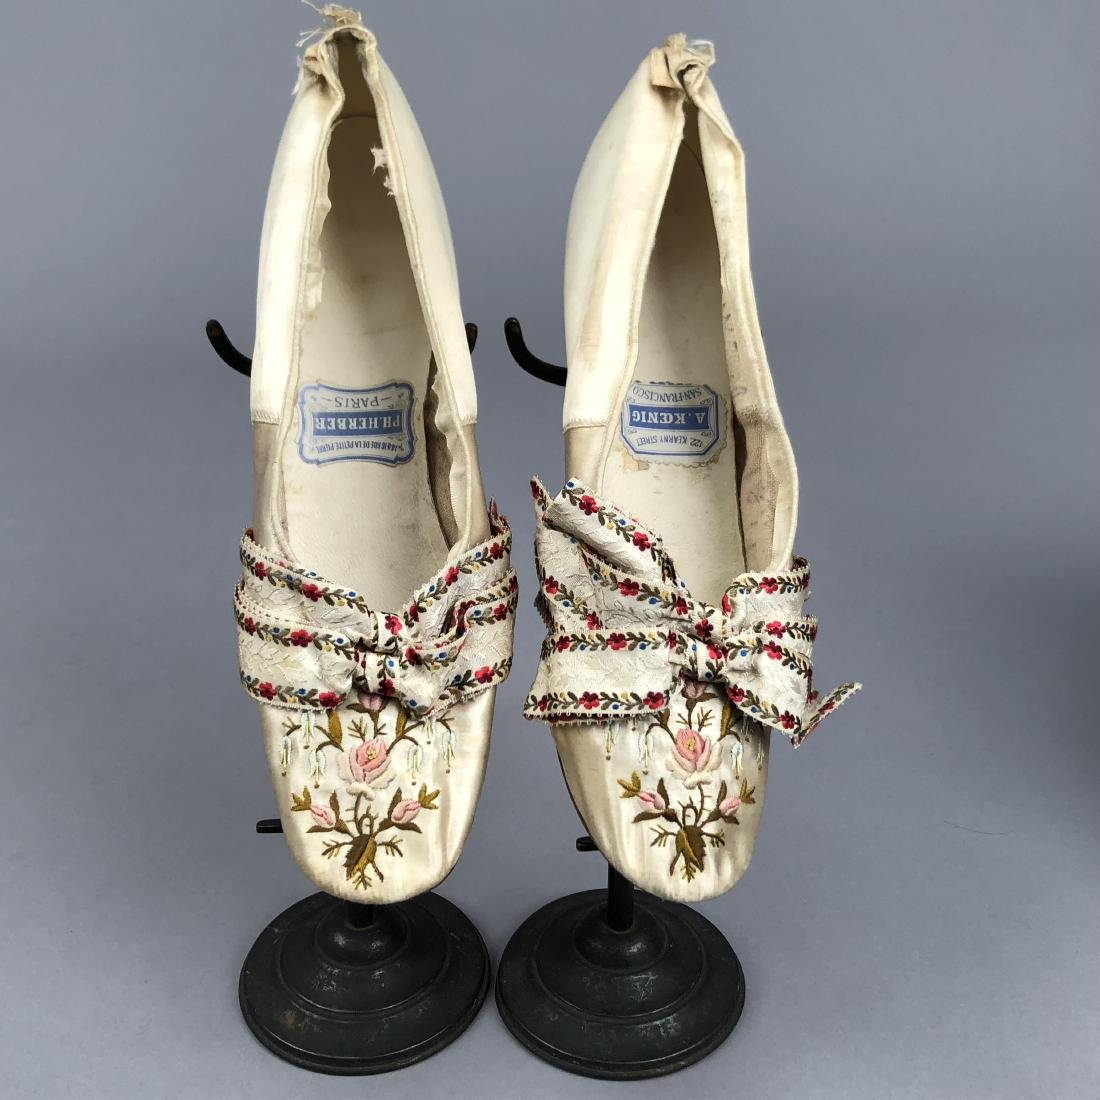 TWO PAIR LADIES' SHOES with LOUIS HEEL, 1870s - 4